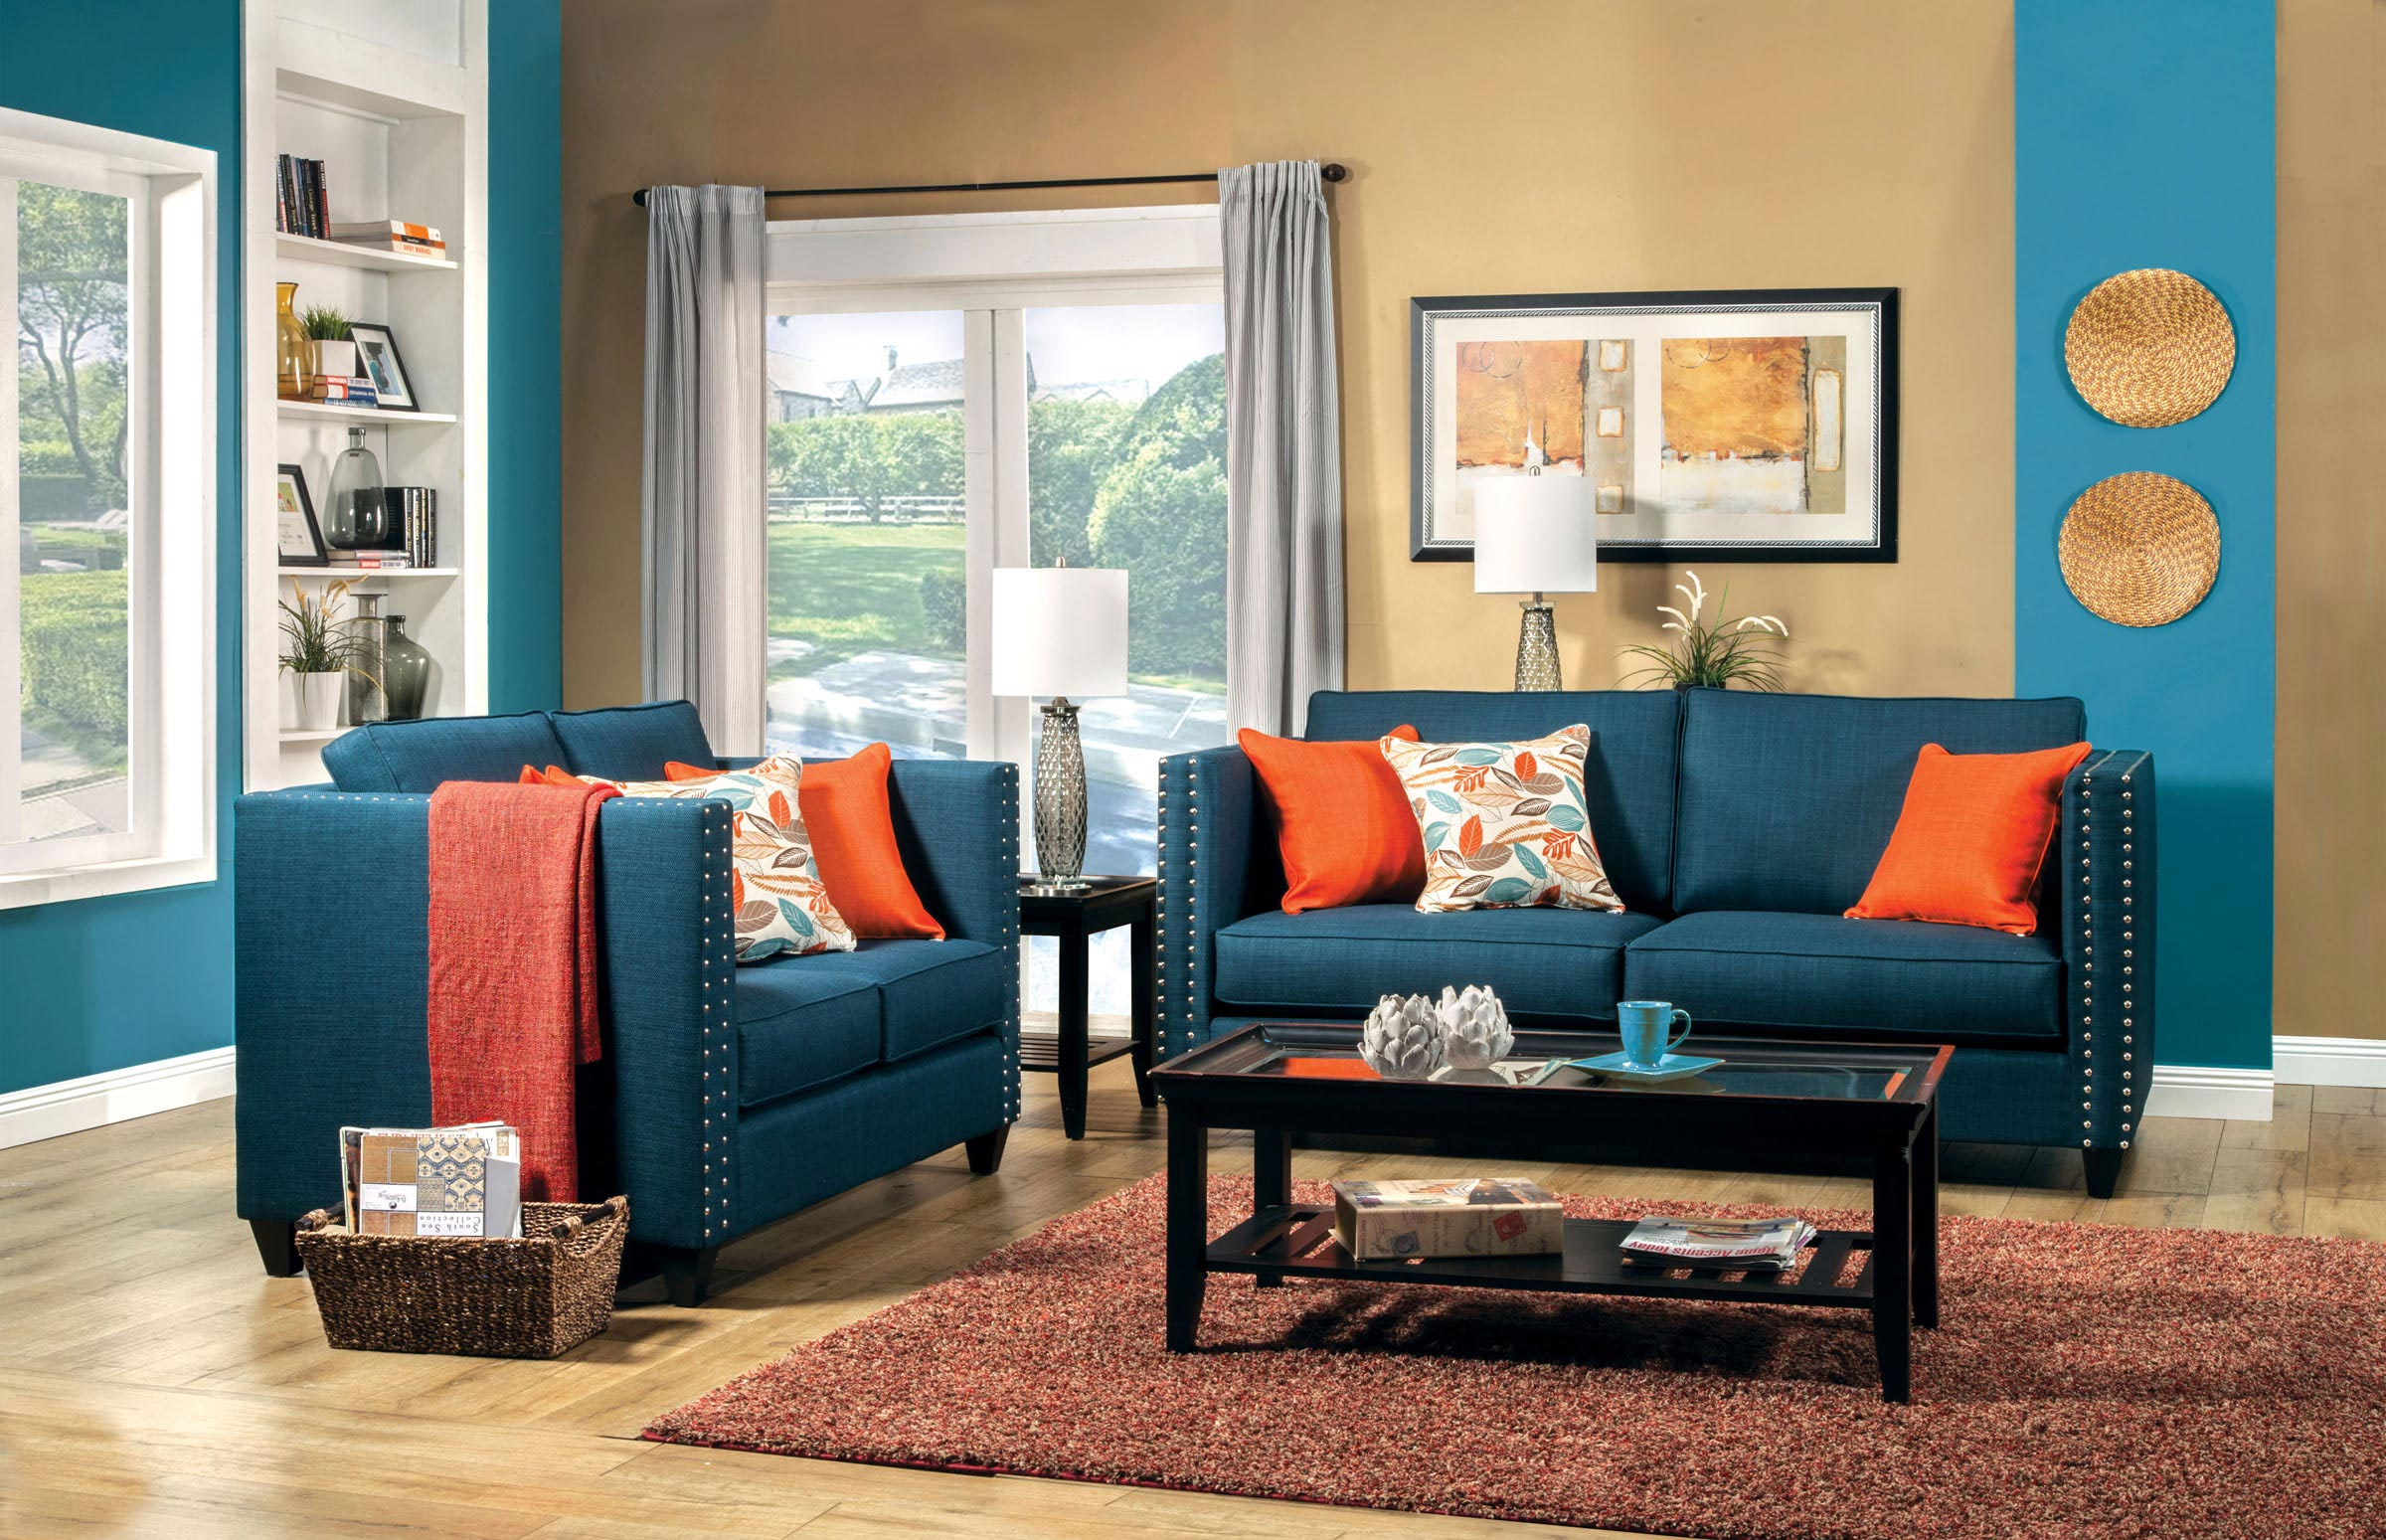 How sofa blue is best among a variety of colors